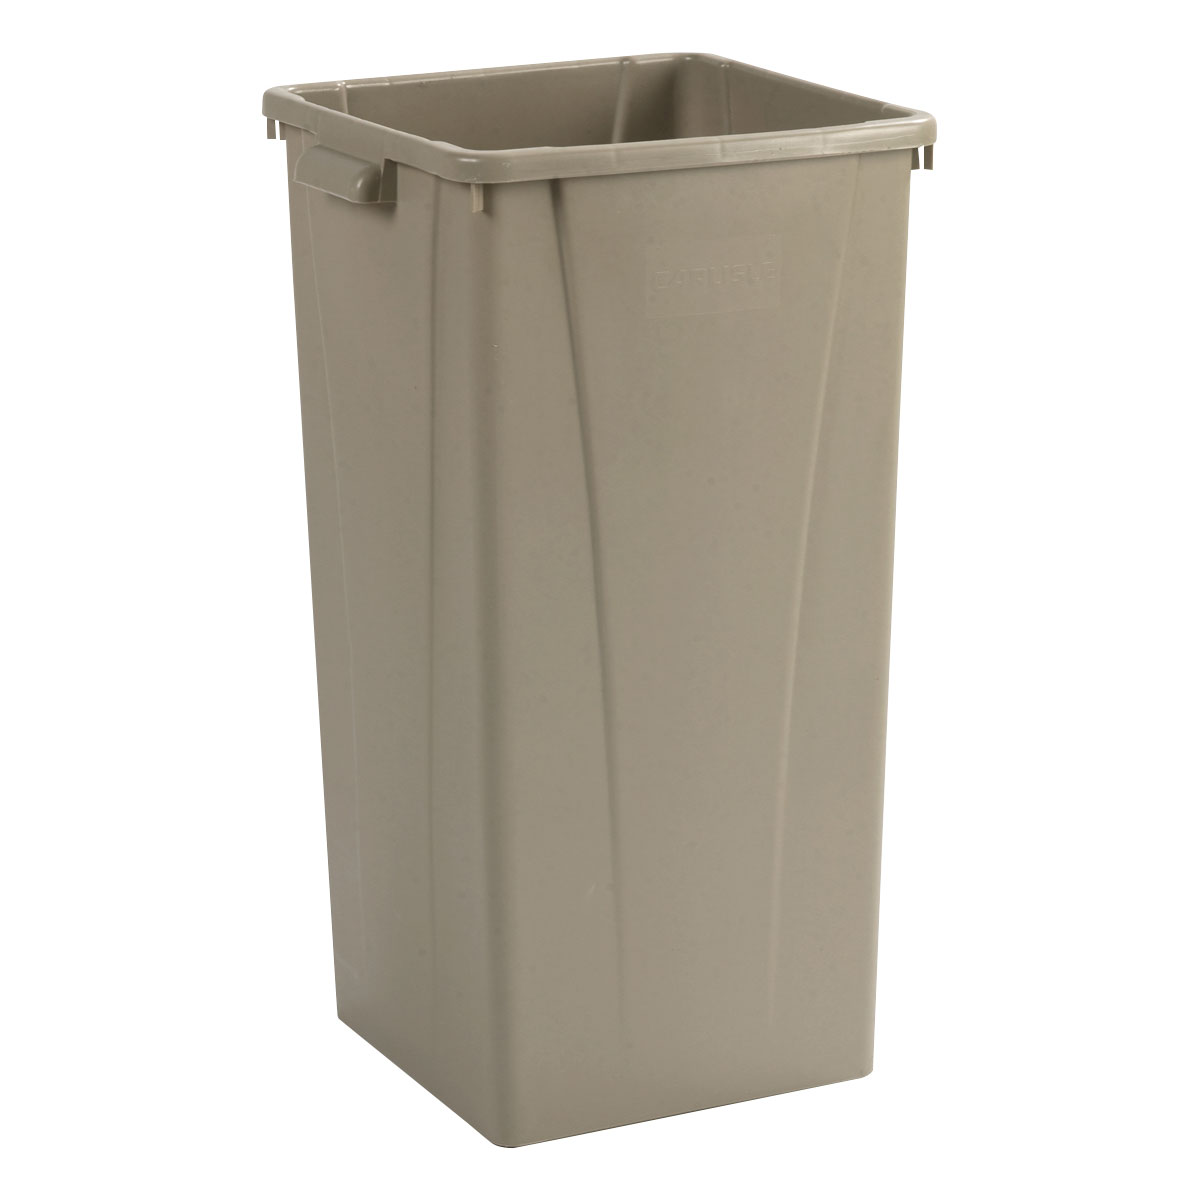 Carlisle 34352306 23-gallon Commercial Trash Can - Plastic, Square, Built-in Handles